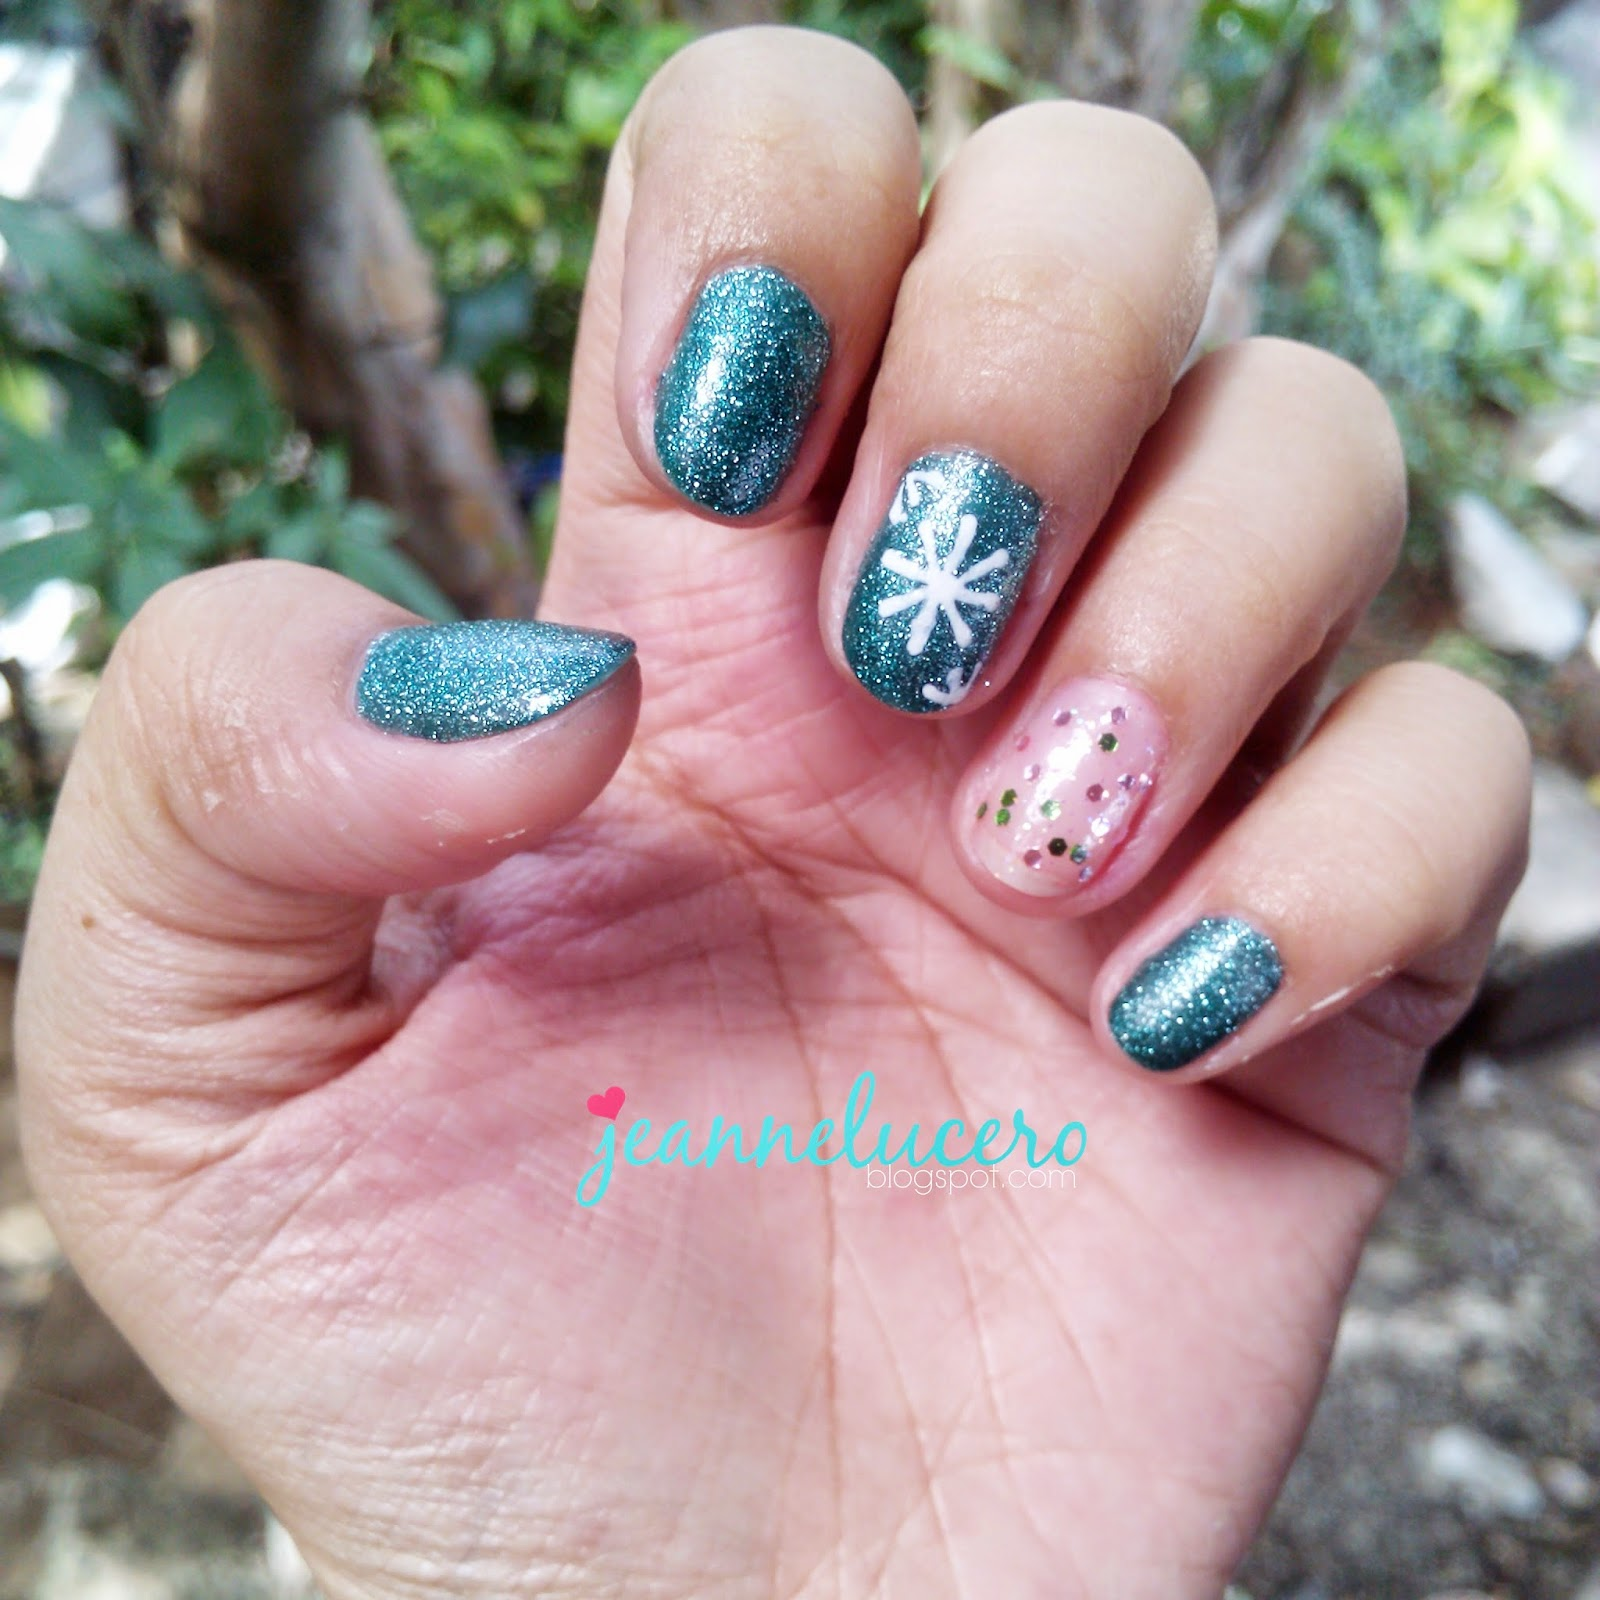 HOLIDAY NAILS WITH OH MY GIRL